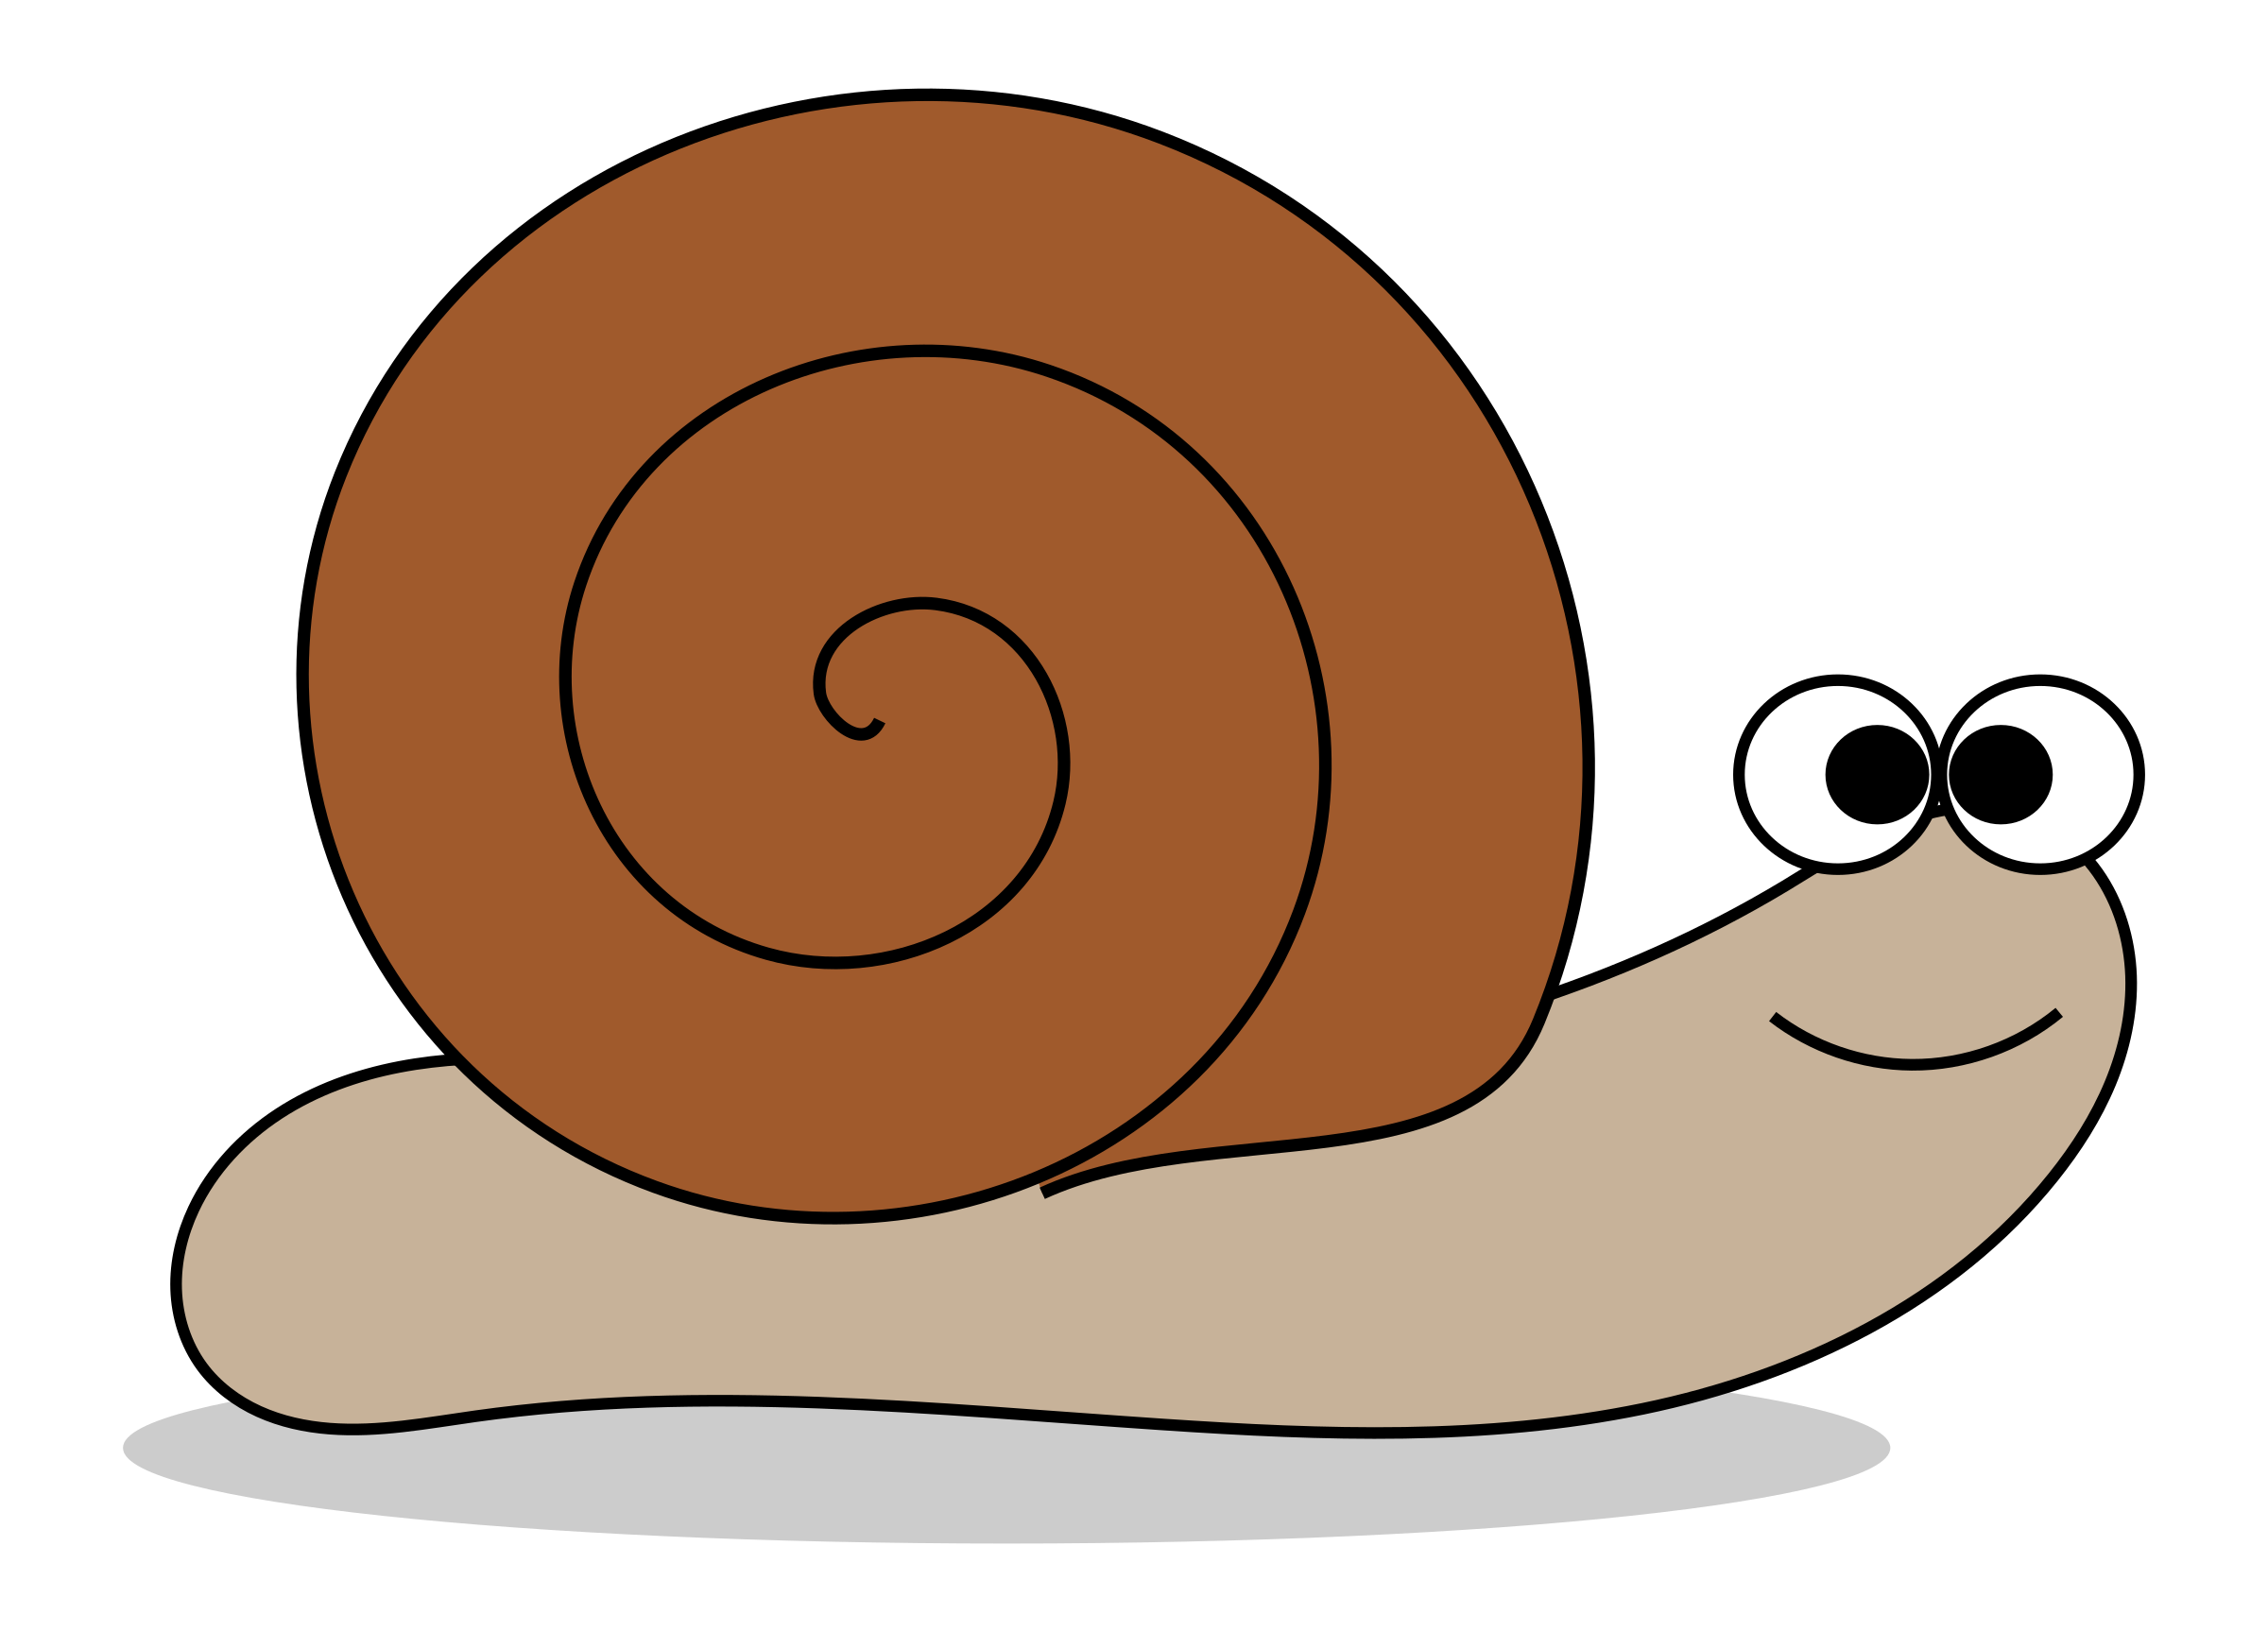 Cartoon snail clipart free public domain image